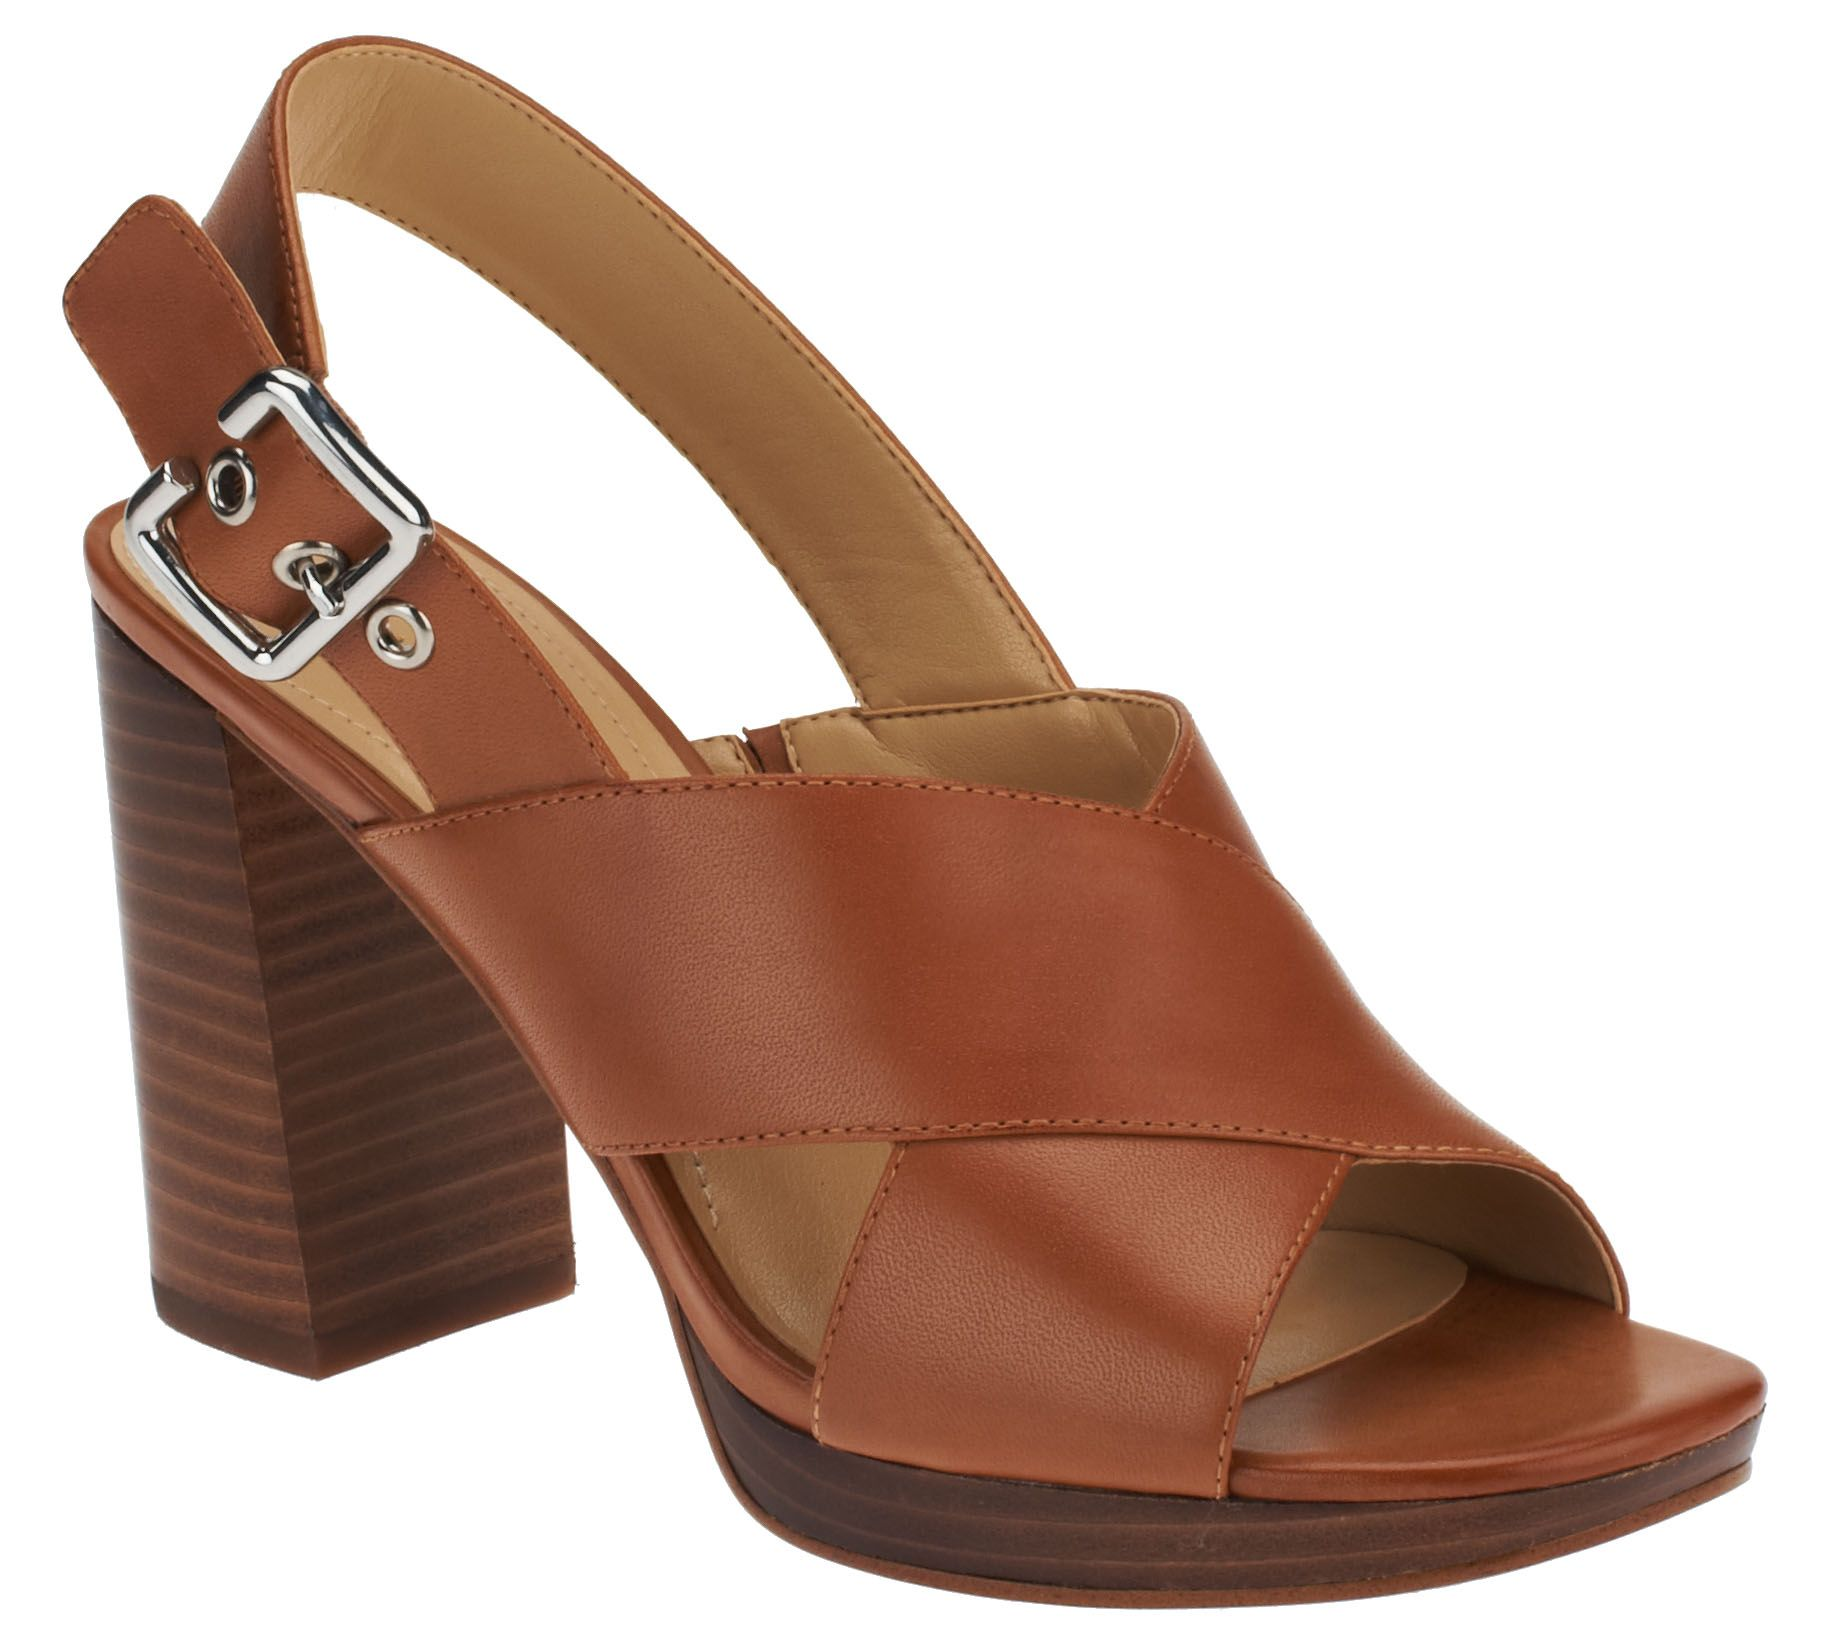 2bf8a6bfdbe7 Marc Fisher Leather Cross-band Sandals - Faithe - Page 1 — QVC.com